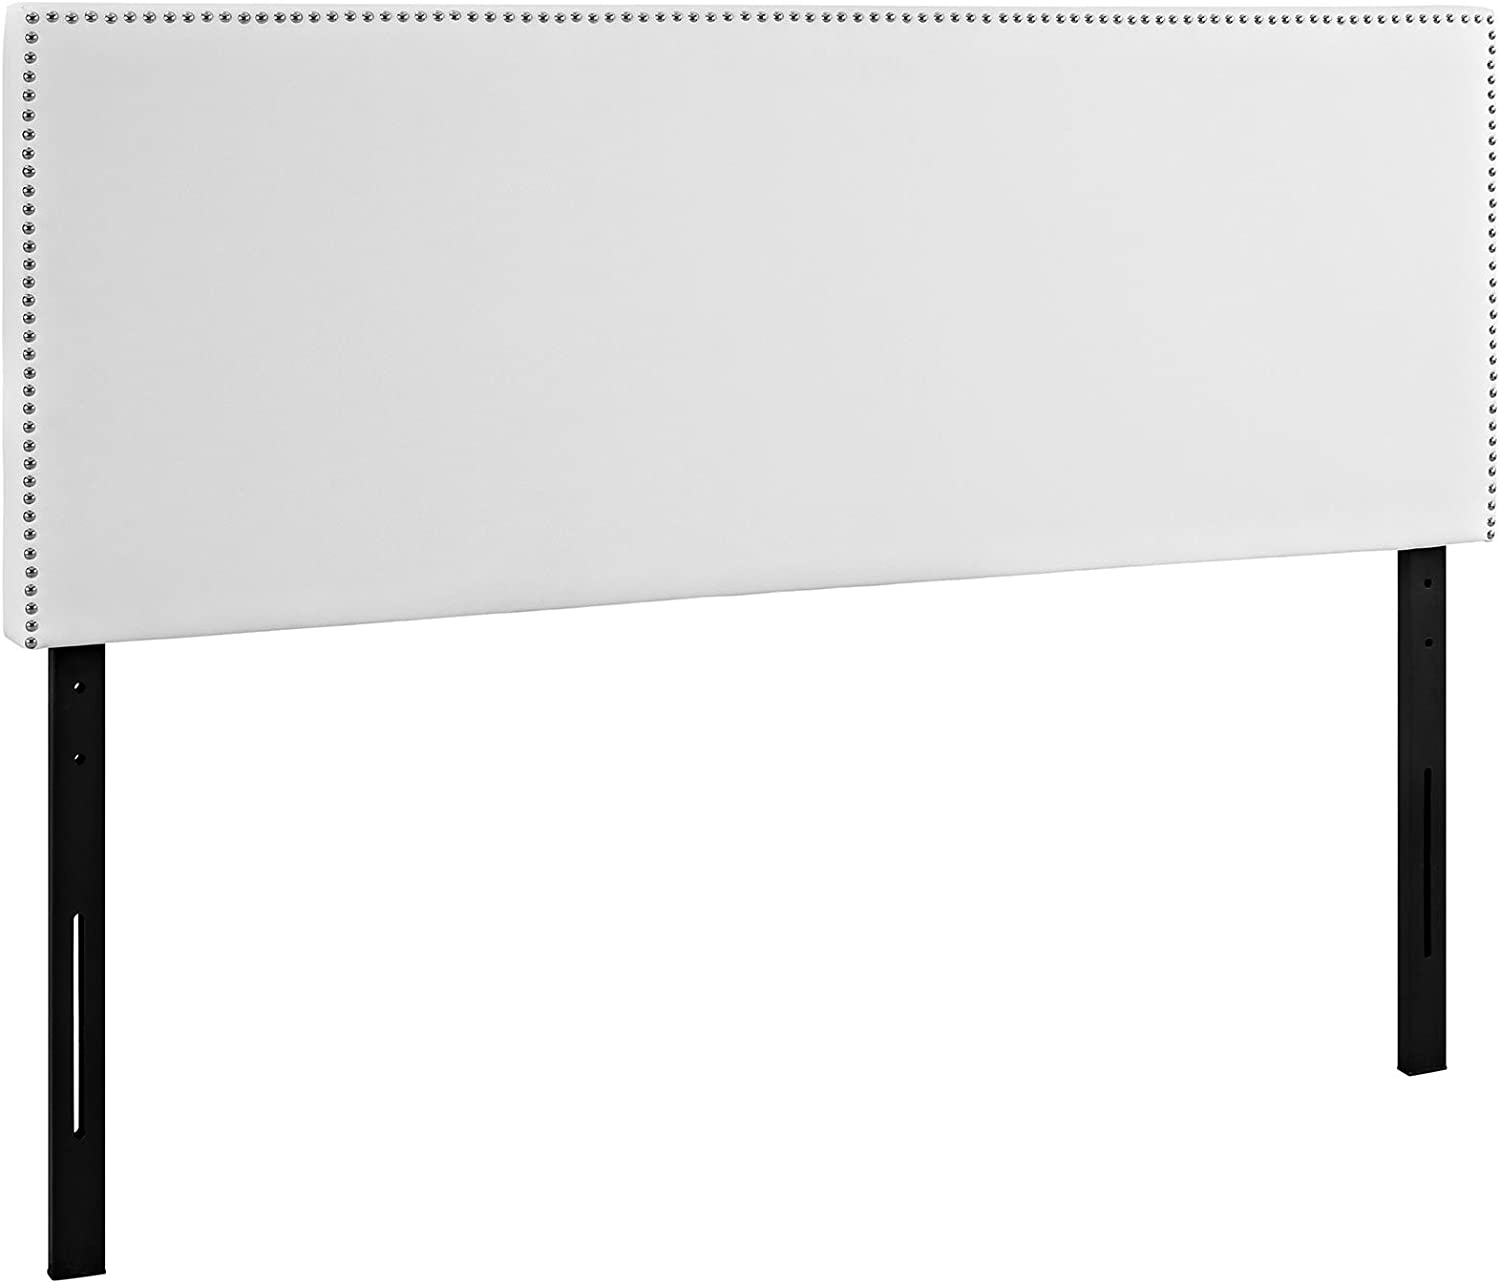 Modway Phoebe Faux Leather Upholstered Queen Headboard in White with Nailhead Trim